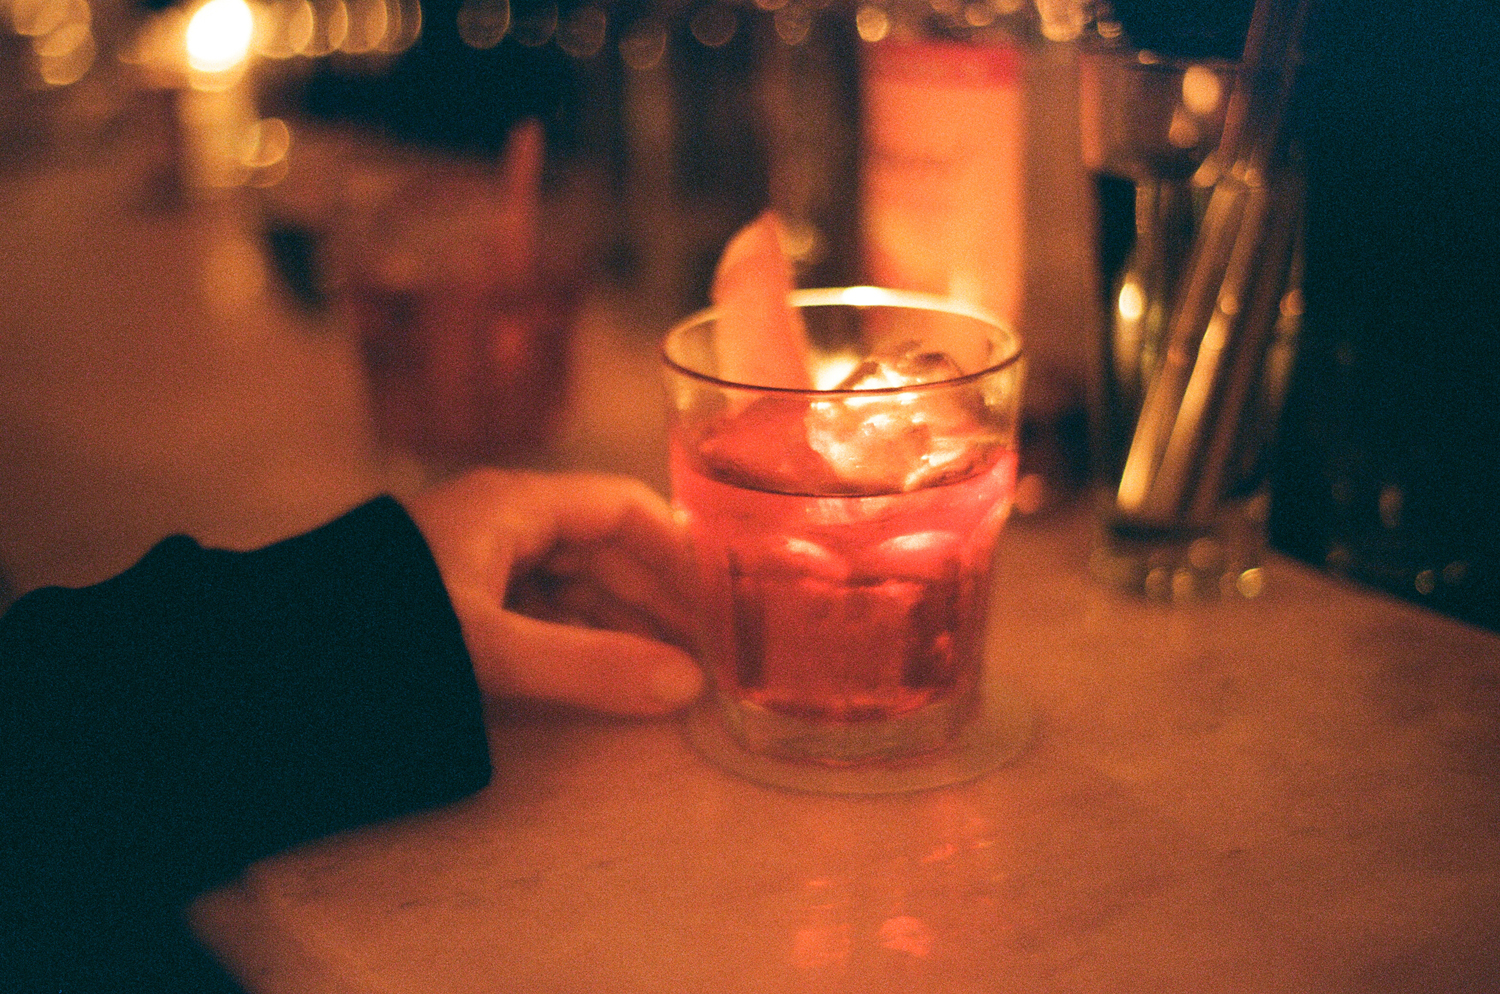 The perfect negroni at Maison Premiere.